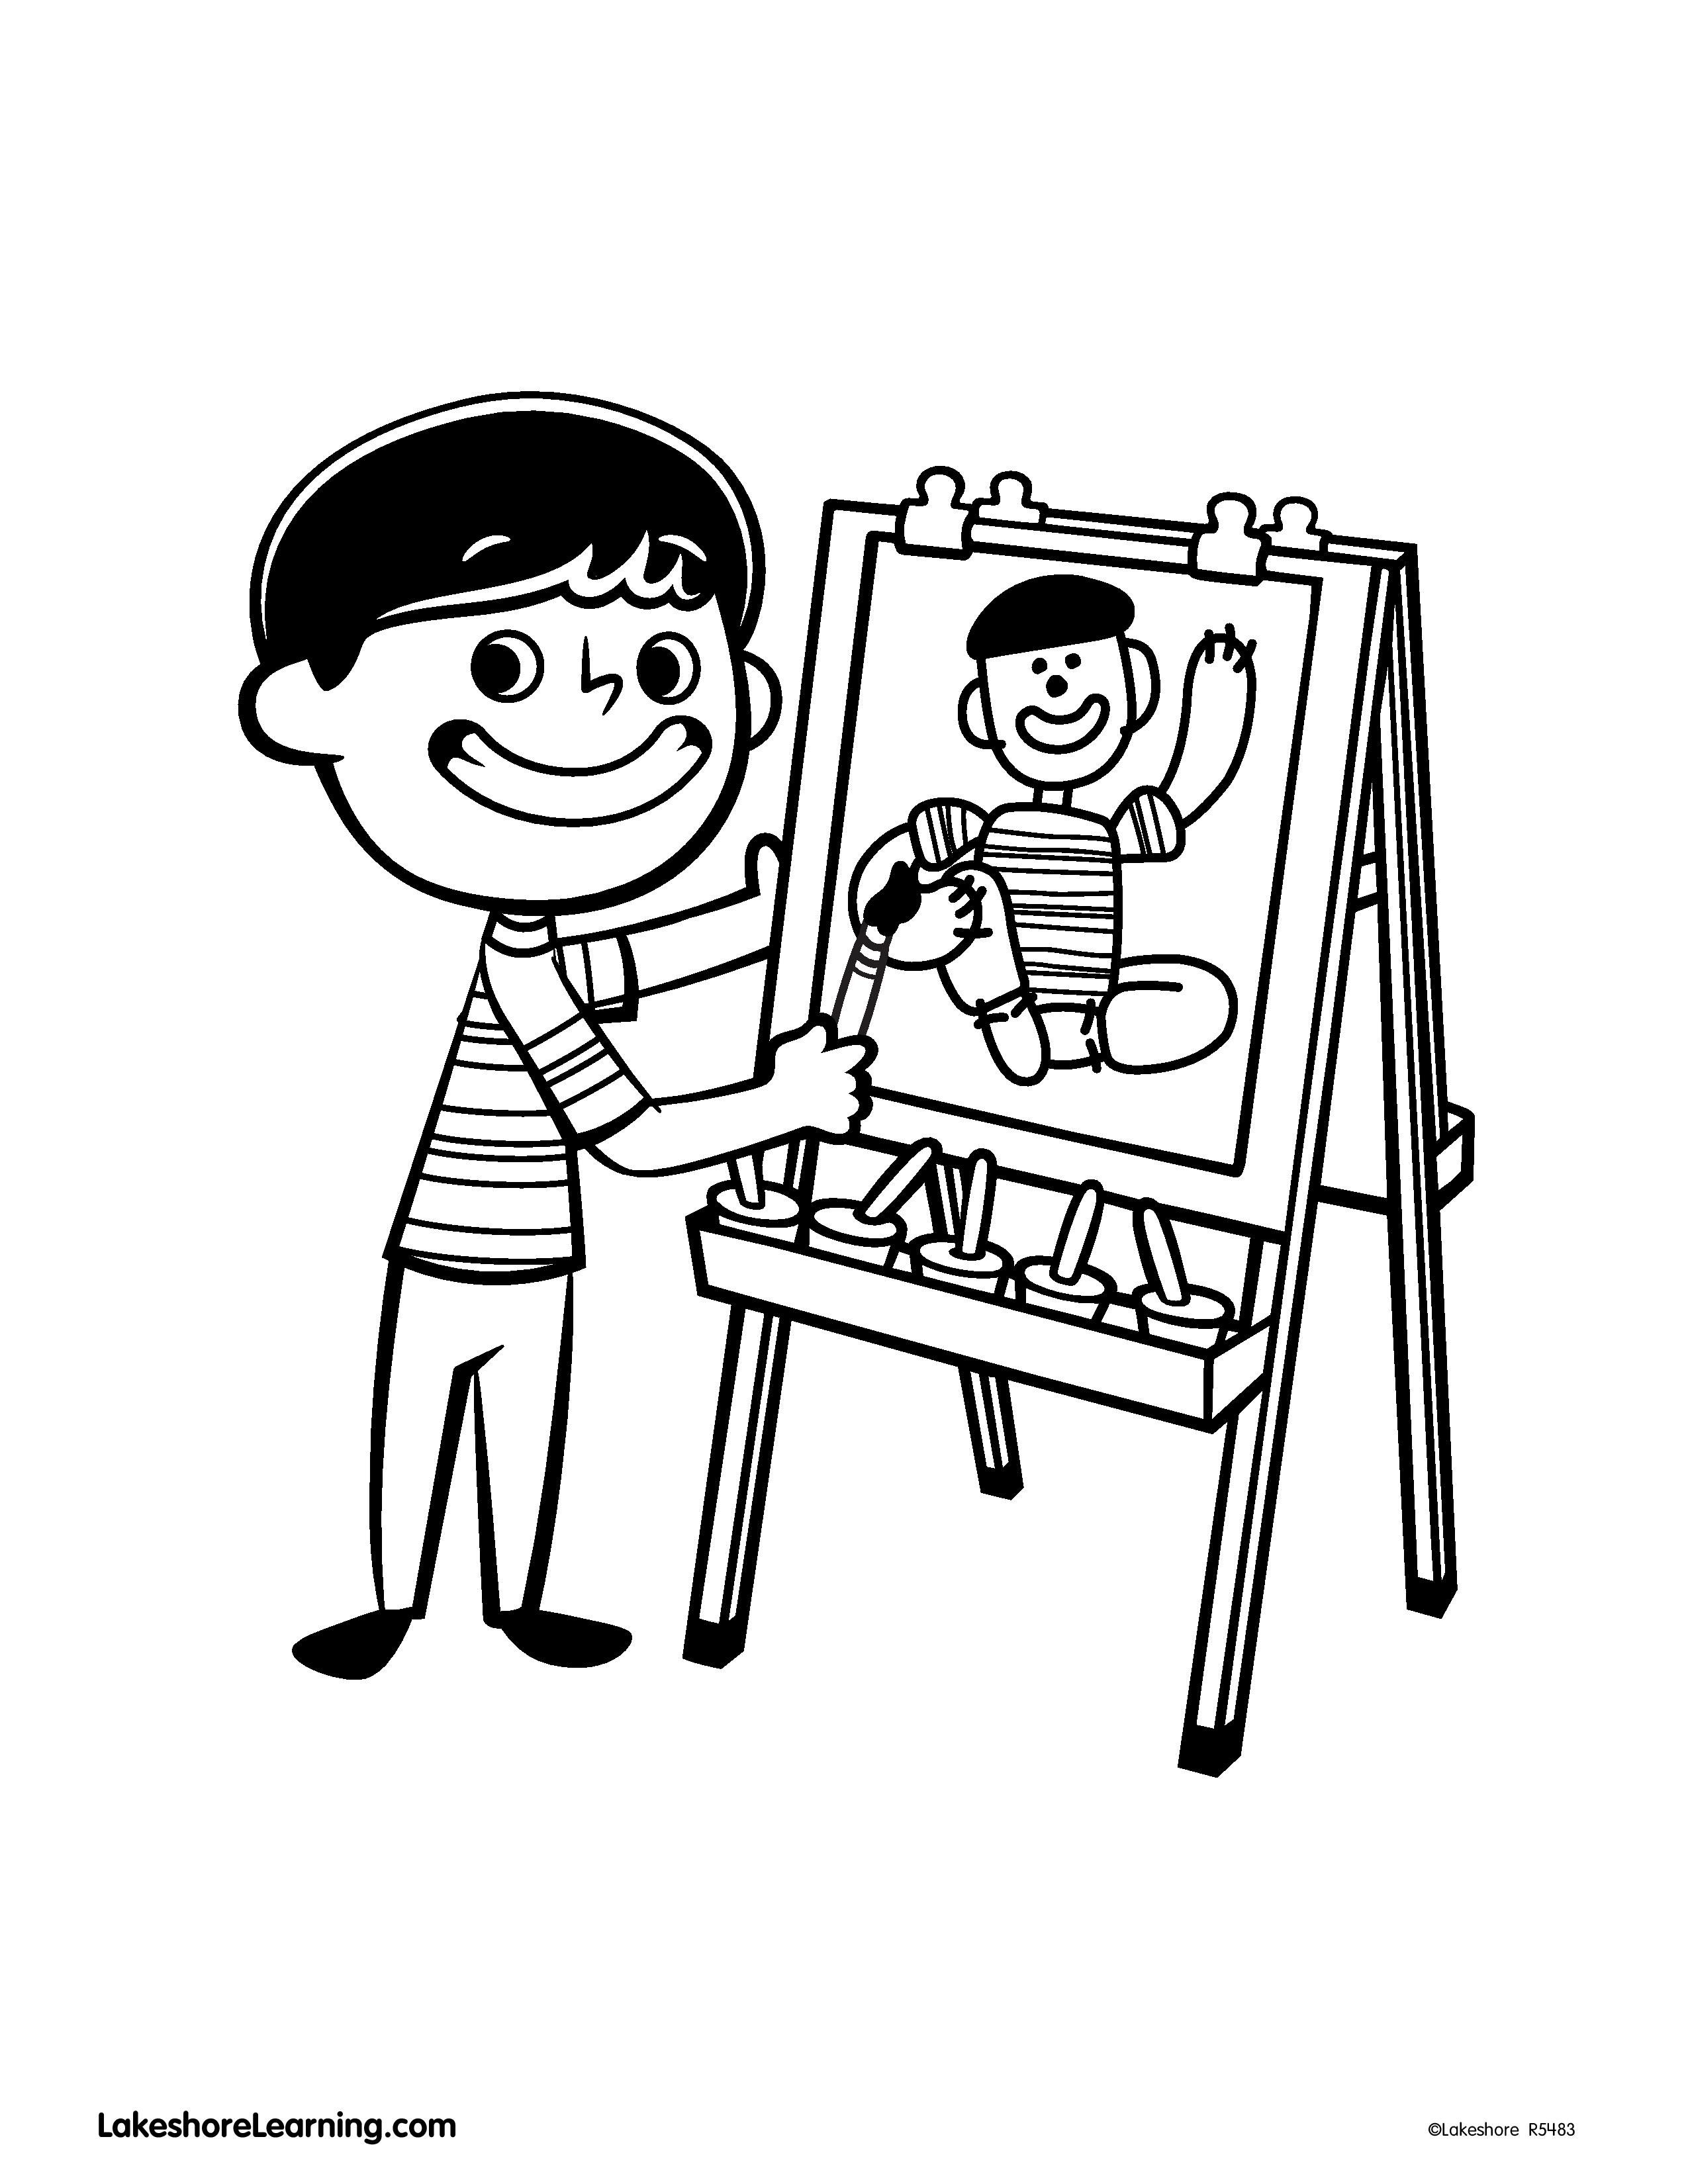 Click On The Pin To Print Out Alex S Coloring Sheet Coloring Sheets Color Vault Boy